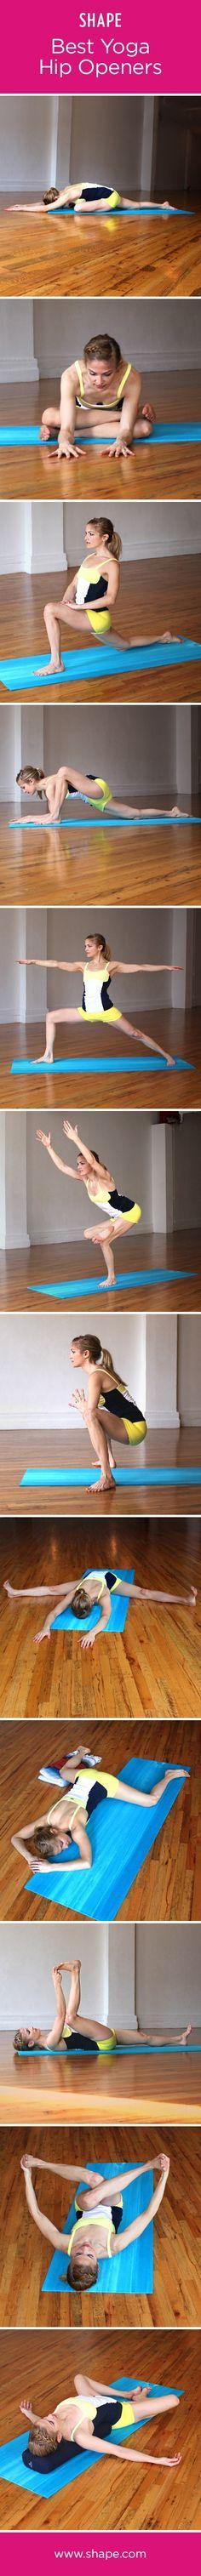 Some people have naturally open hips and, therefore, hip openers in yoga feel like heaven. For others who have tight hips or hips that have been made tight by r